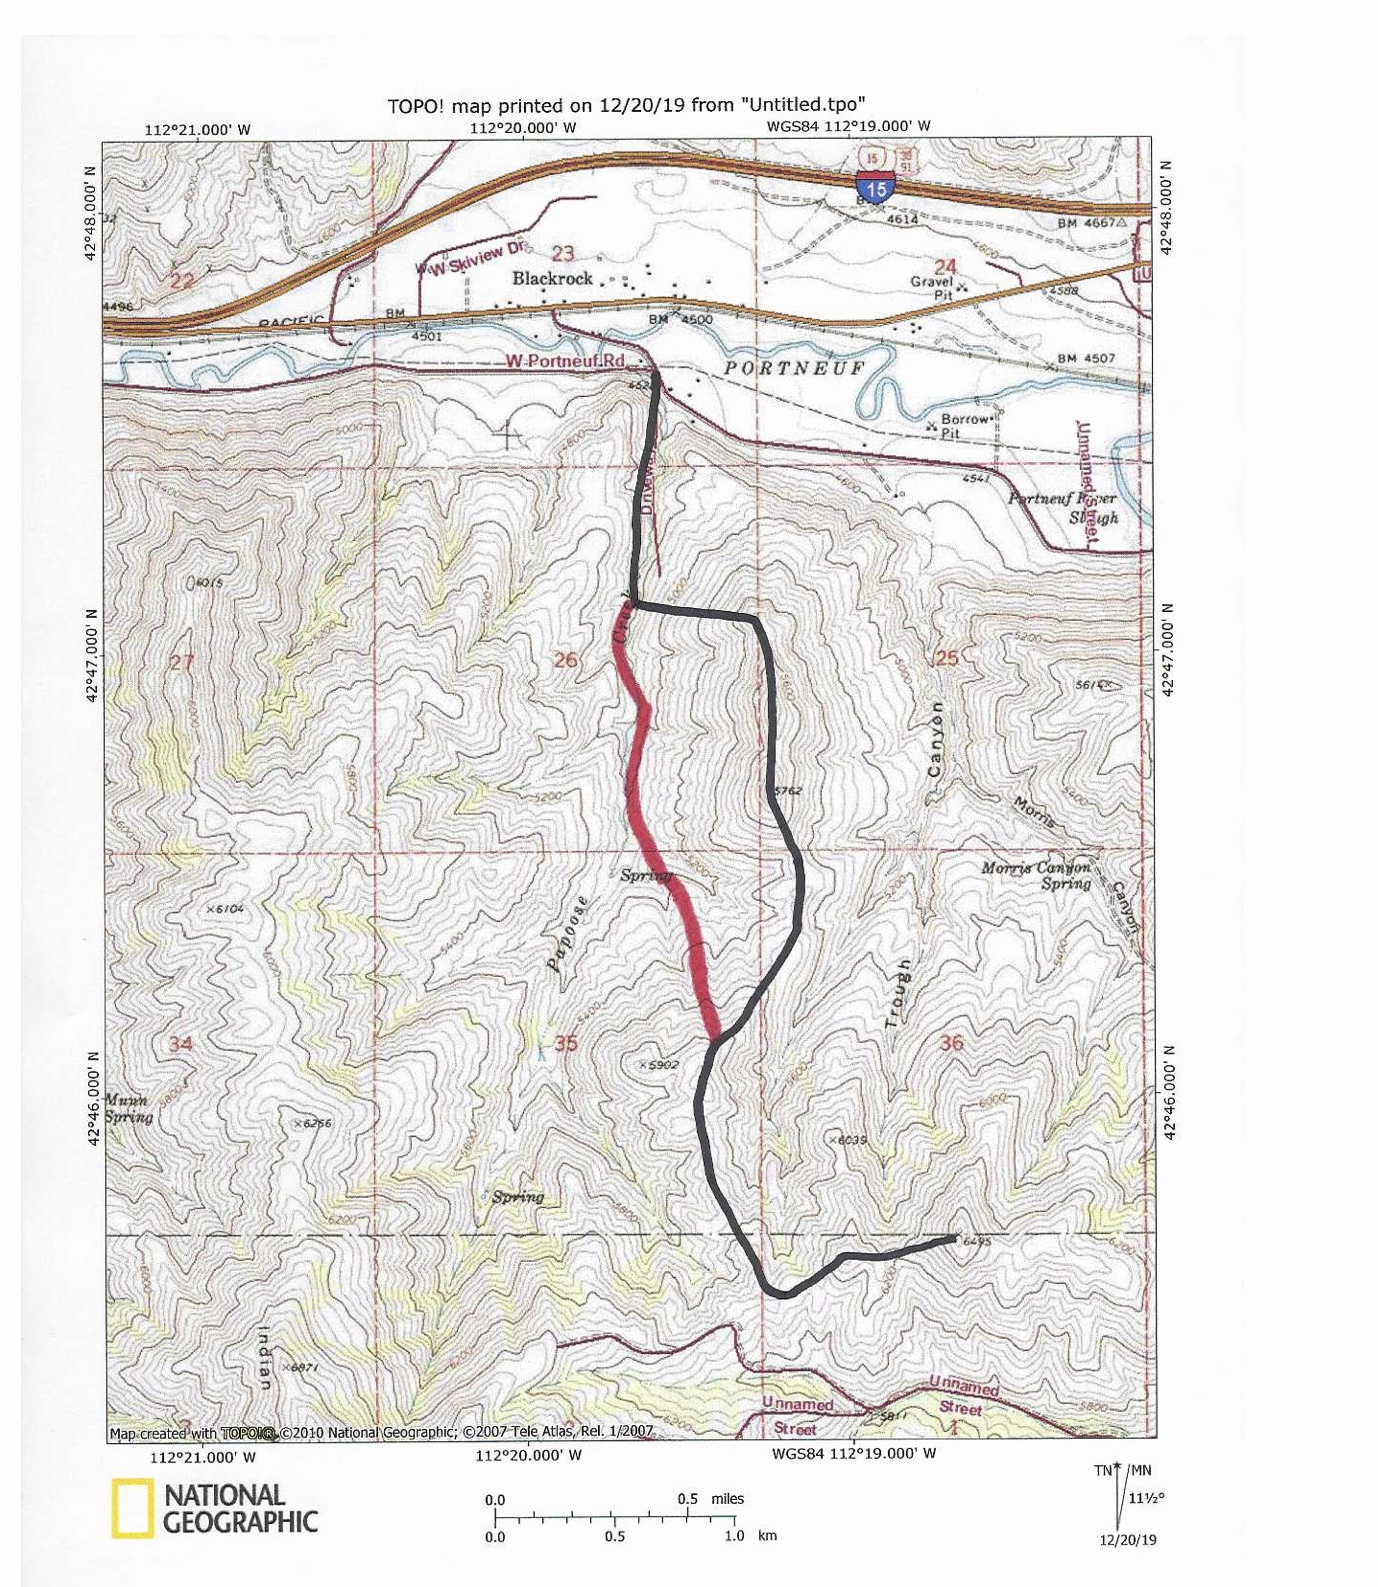 The black line indicates the ascent route. The red line indicates the descent route.